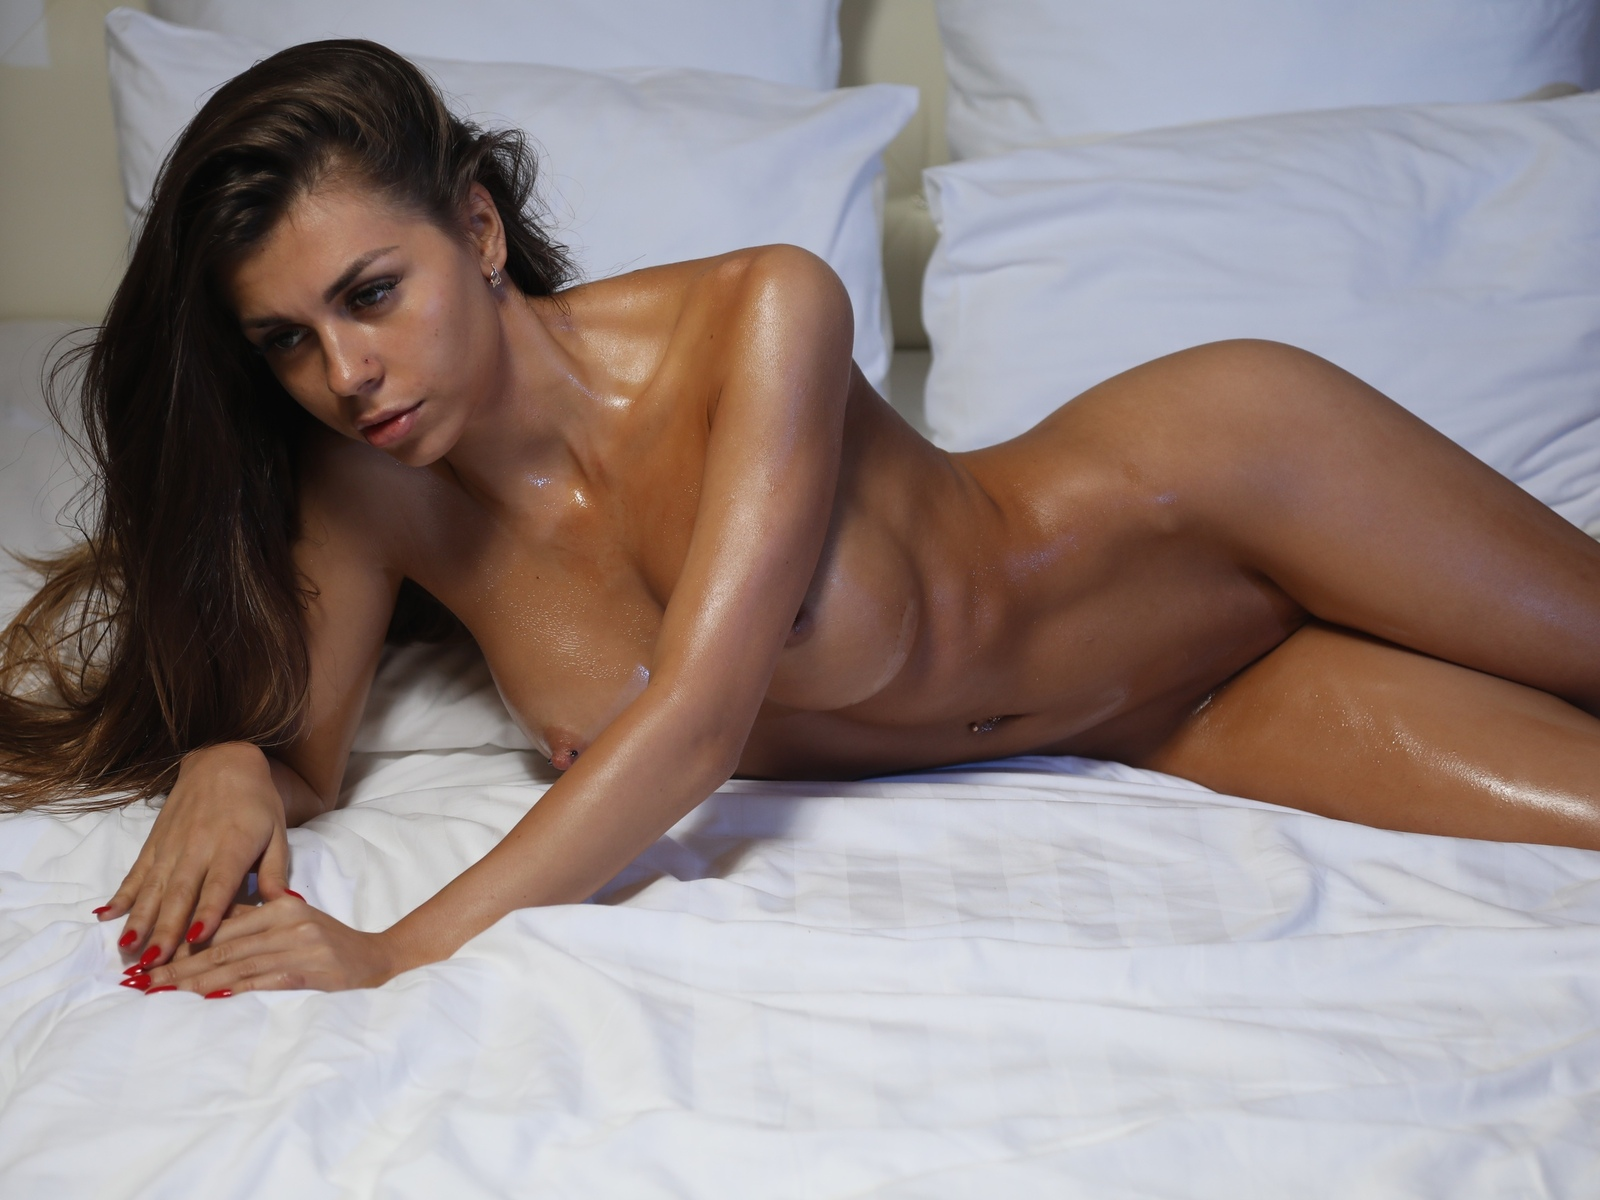 Tanning Bed Nude Photos